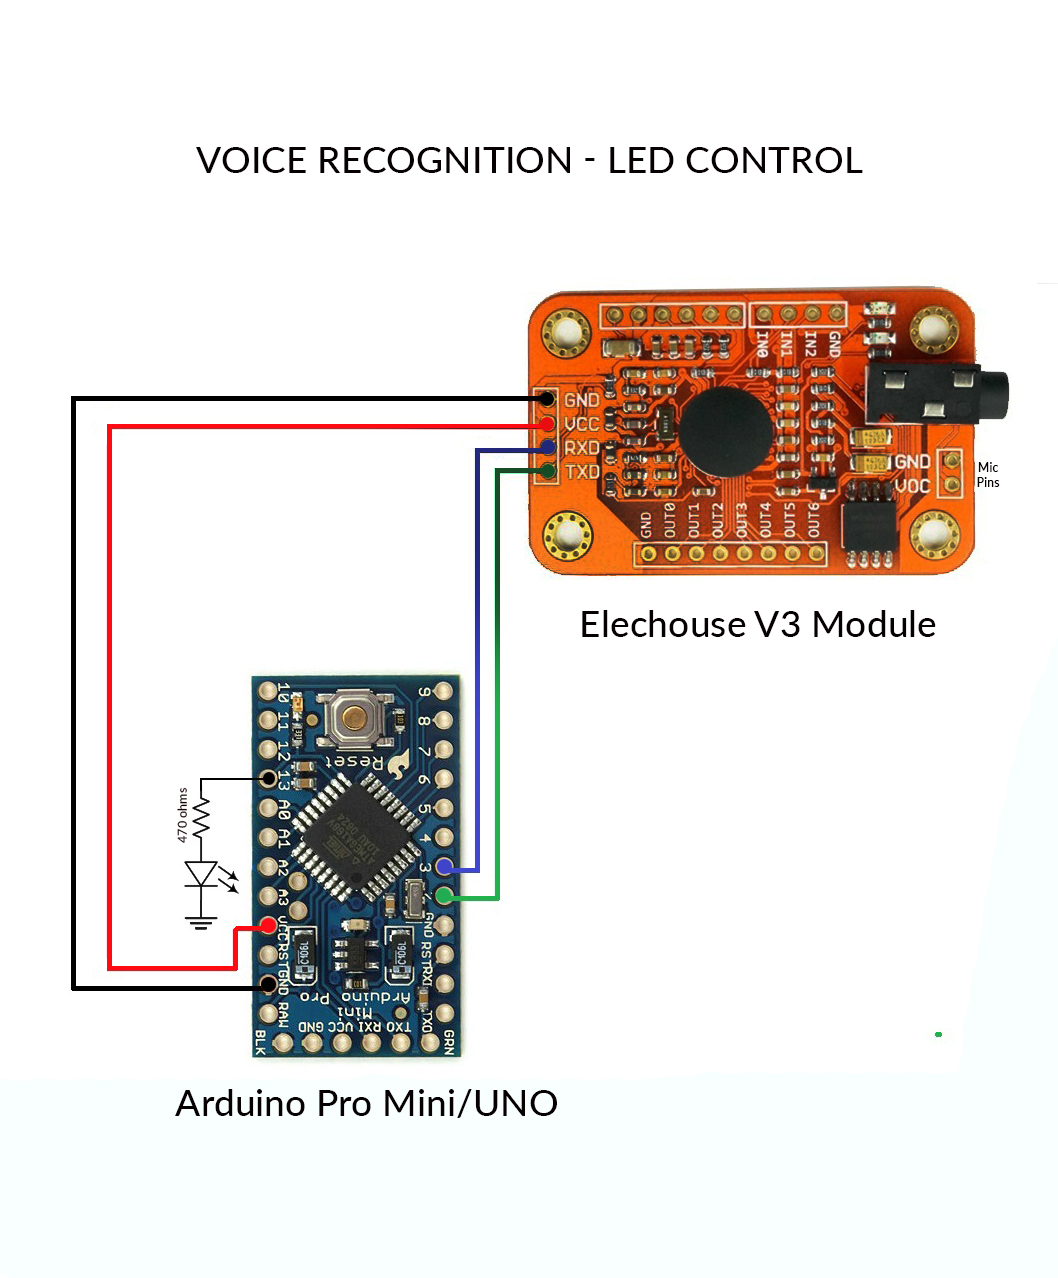 Voice Recognition With Elechouse V3 And Arduino Led Wiring Diagram Circuit Dhz7dduzew